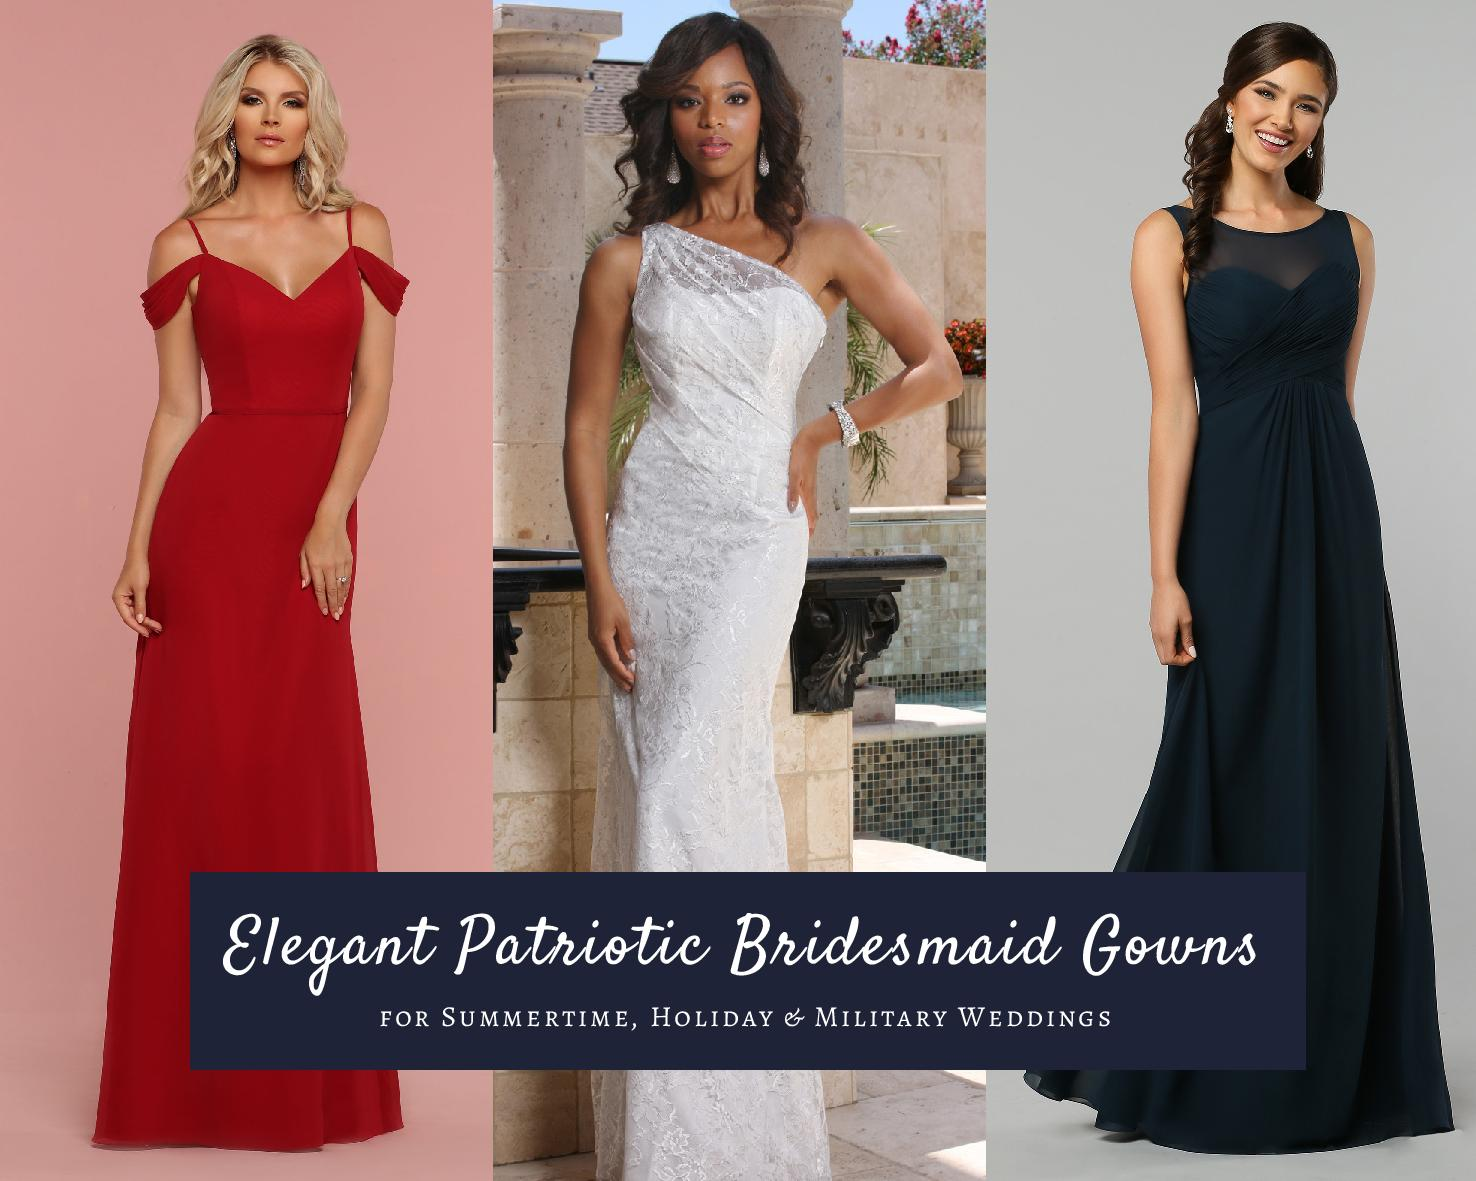 Patriotic Bridesmaid Gowns for Elegant Summertime 43a567a9b5dc